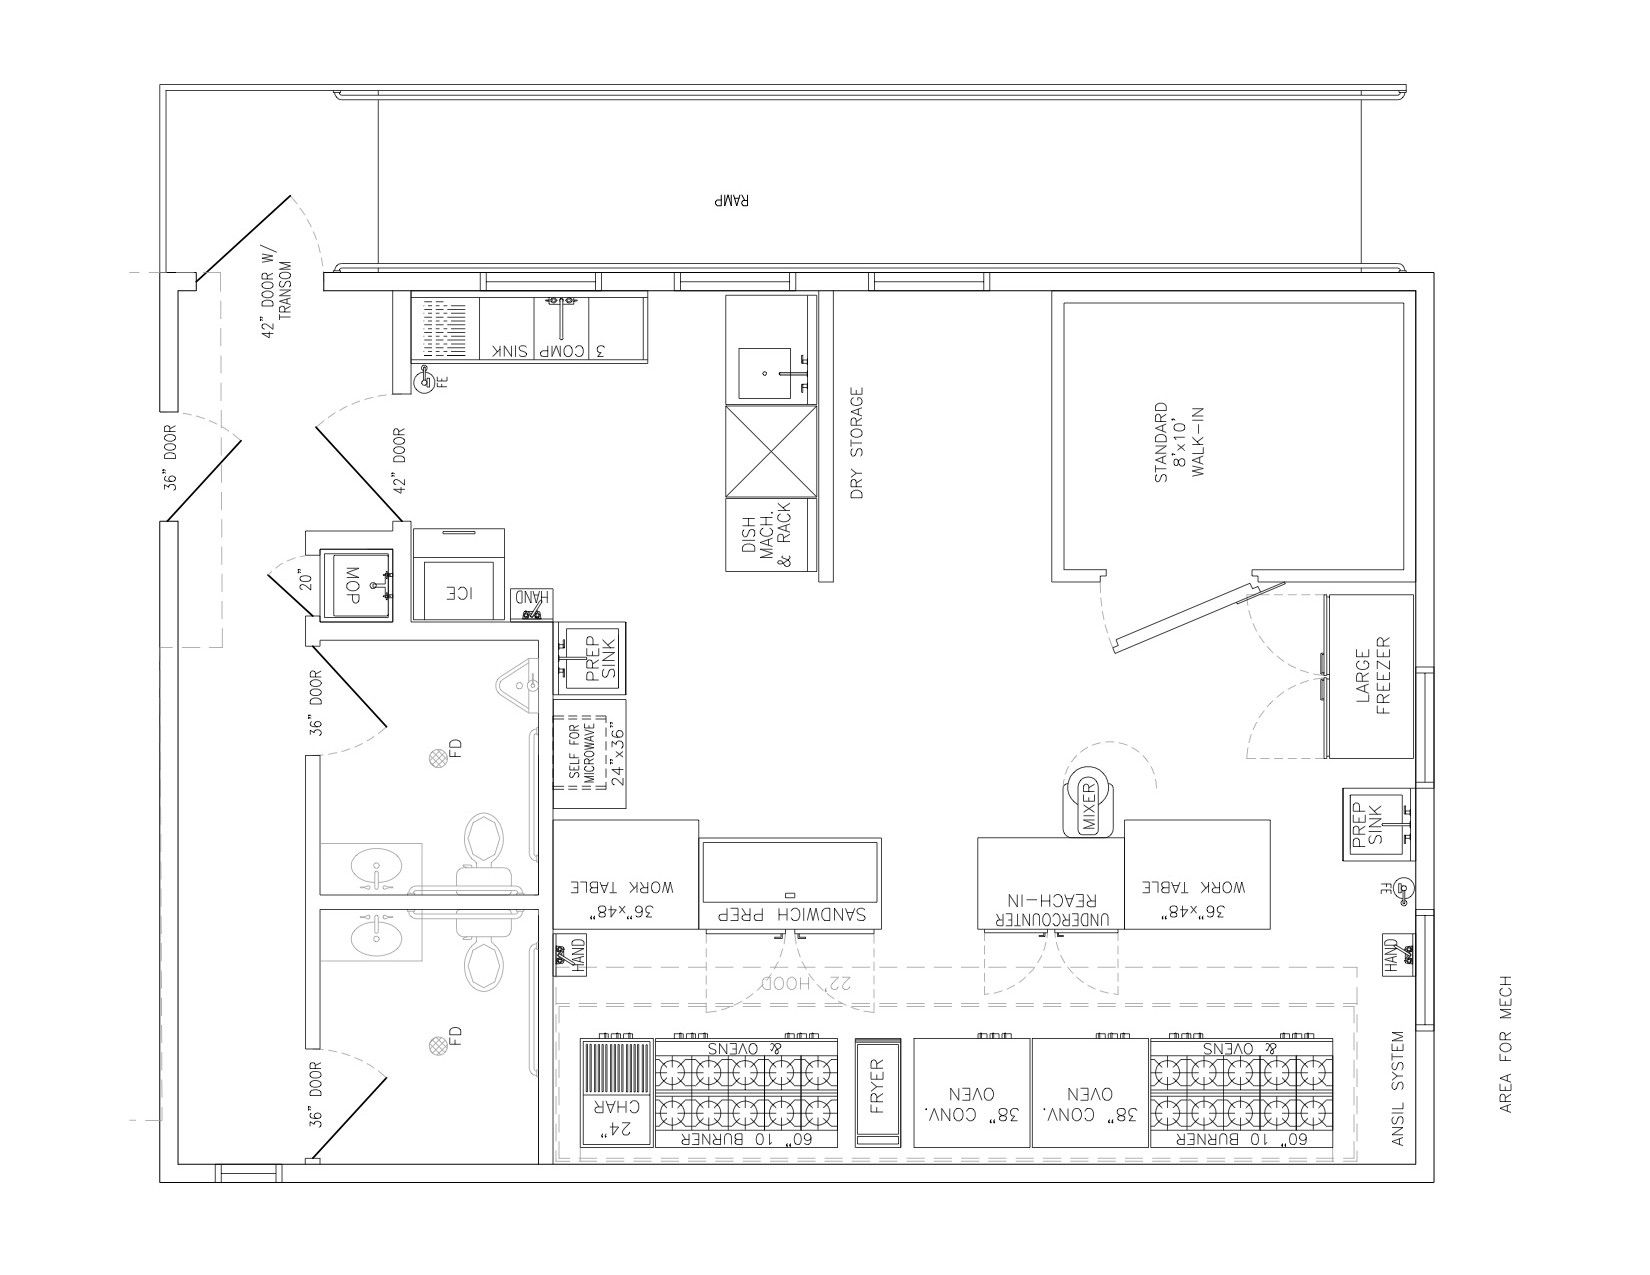 Commercial Kitchen Floor Planaustin Commercial Kitchen Kitchen Ventures Our Facility Nwtodrfq Jpg 16 Commercial Kitchen Design Kitchen Floor Plans Tile Layout